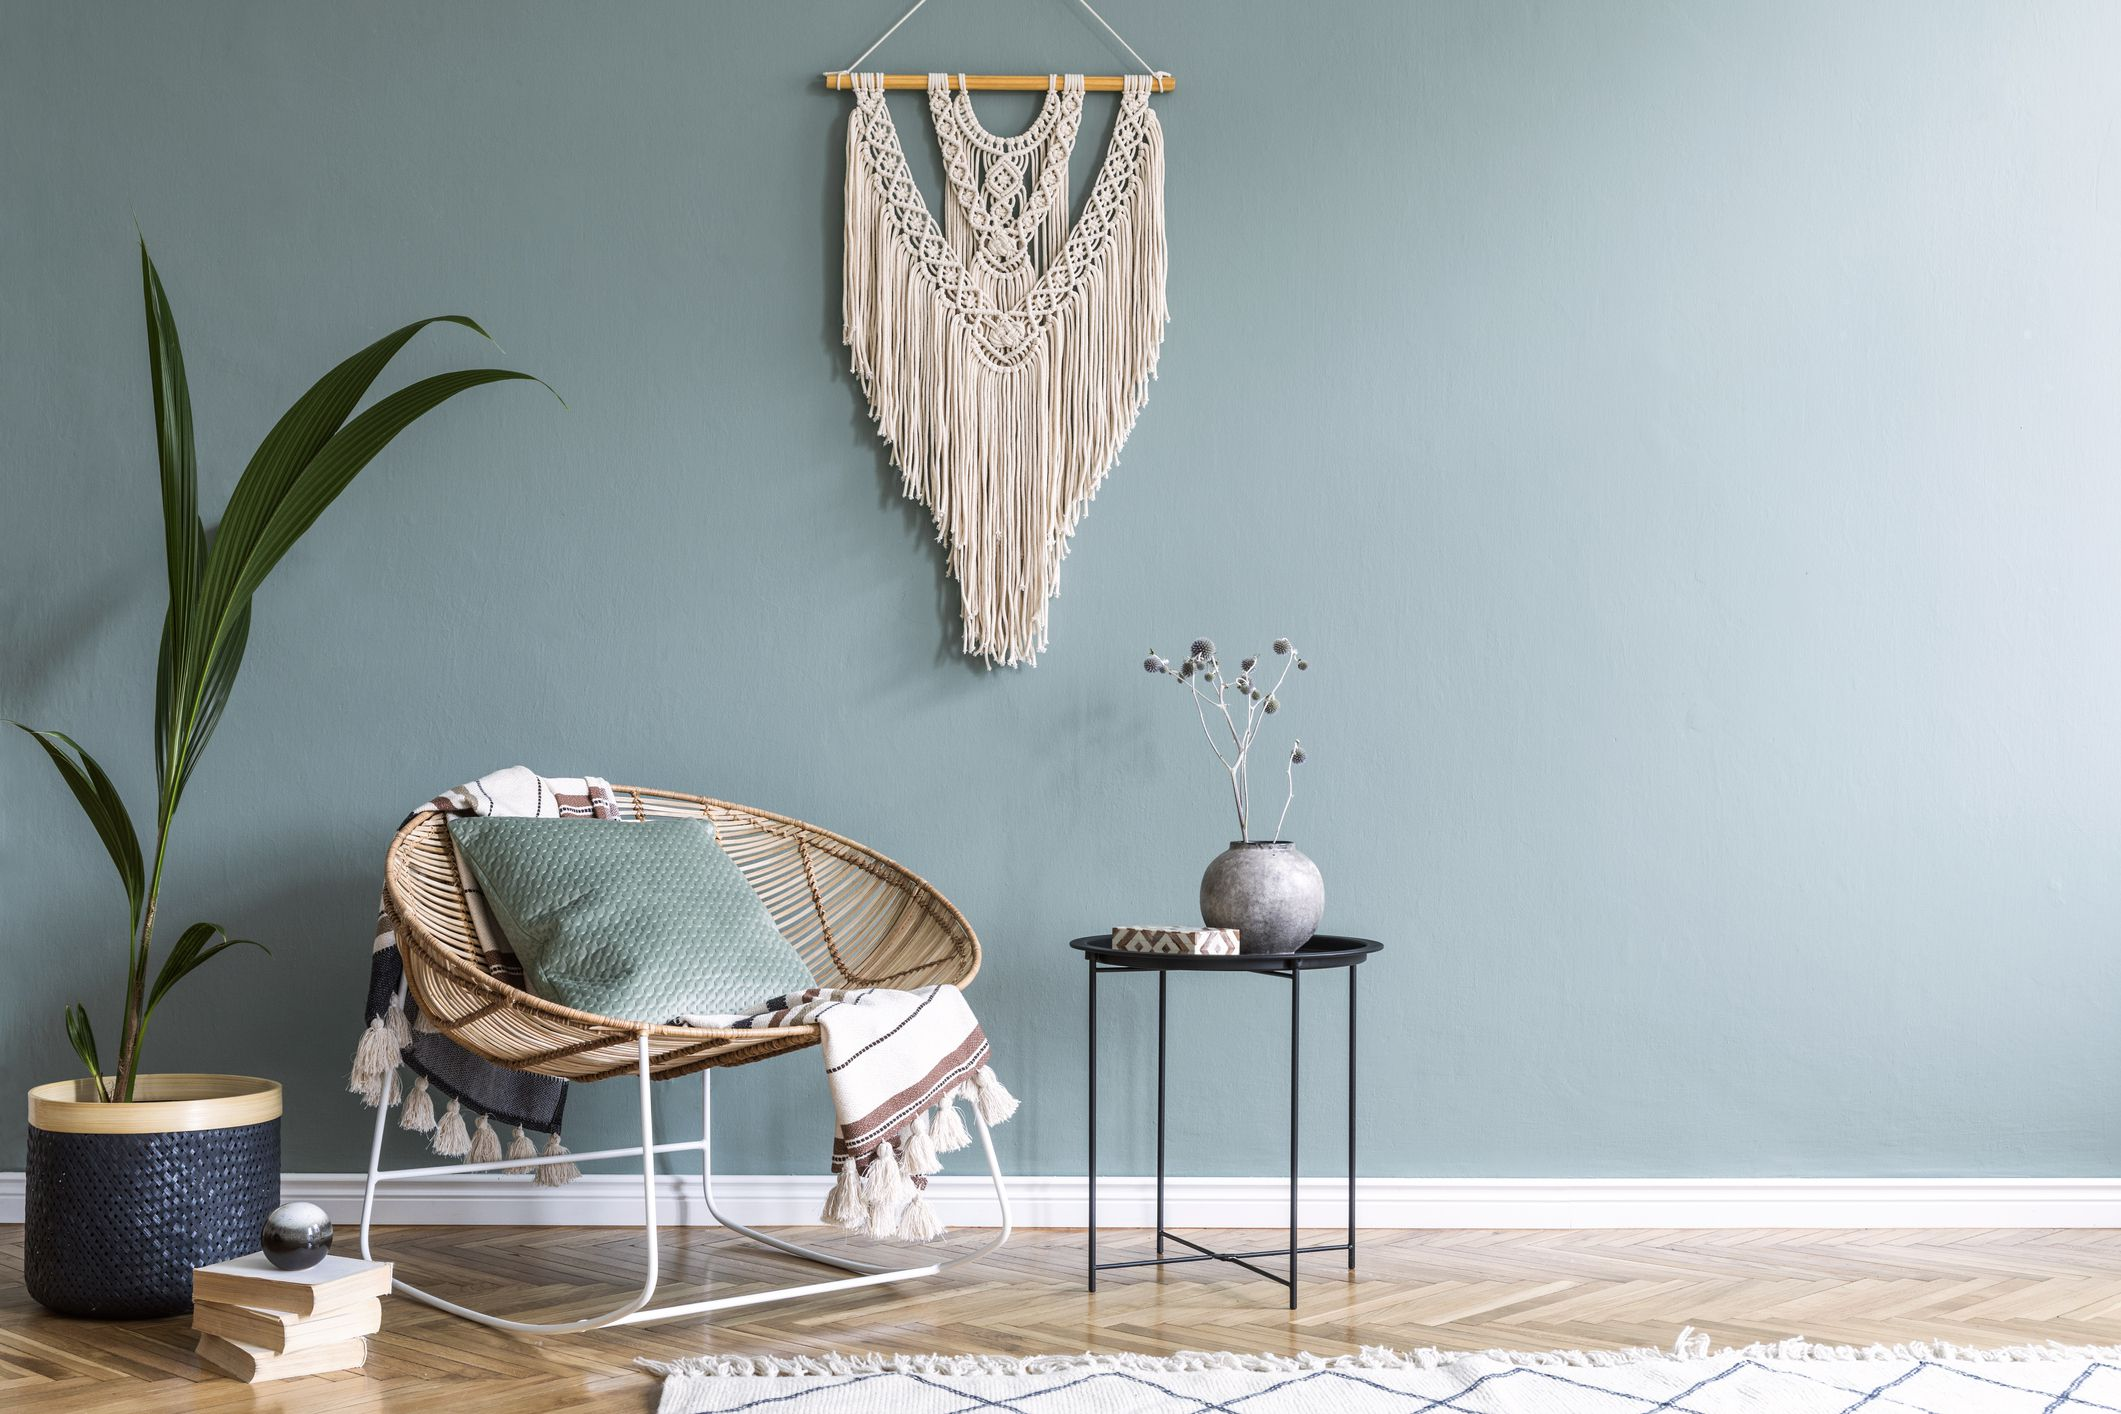 18 Completely Free Macrame Patterns